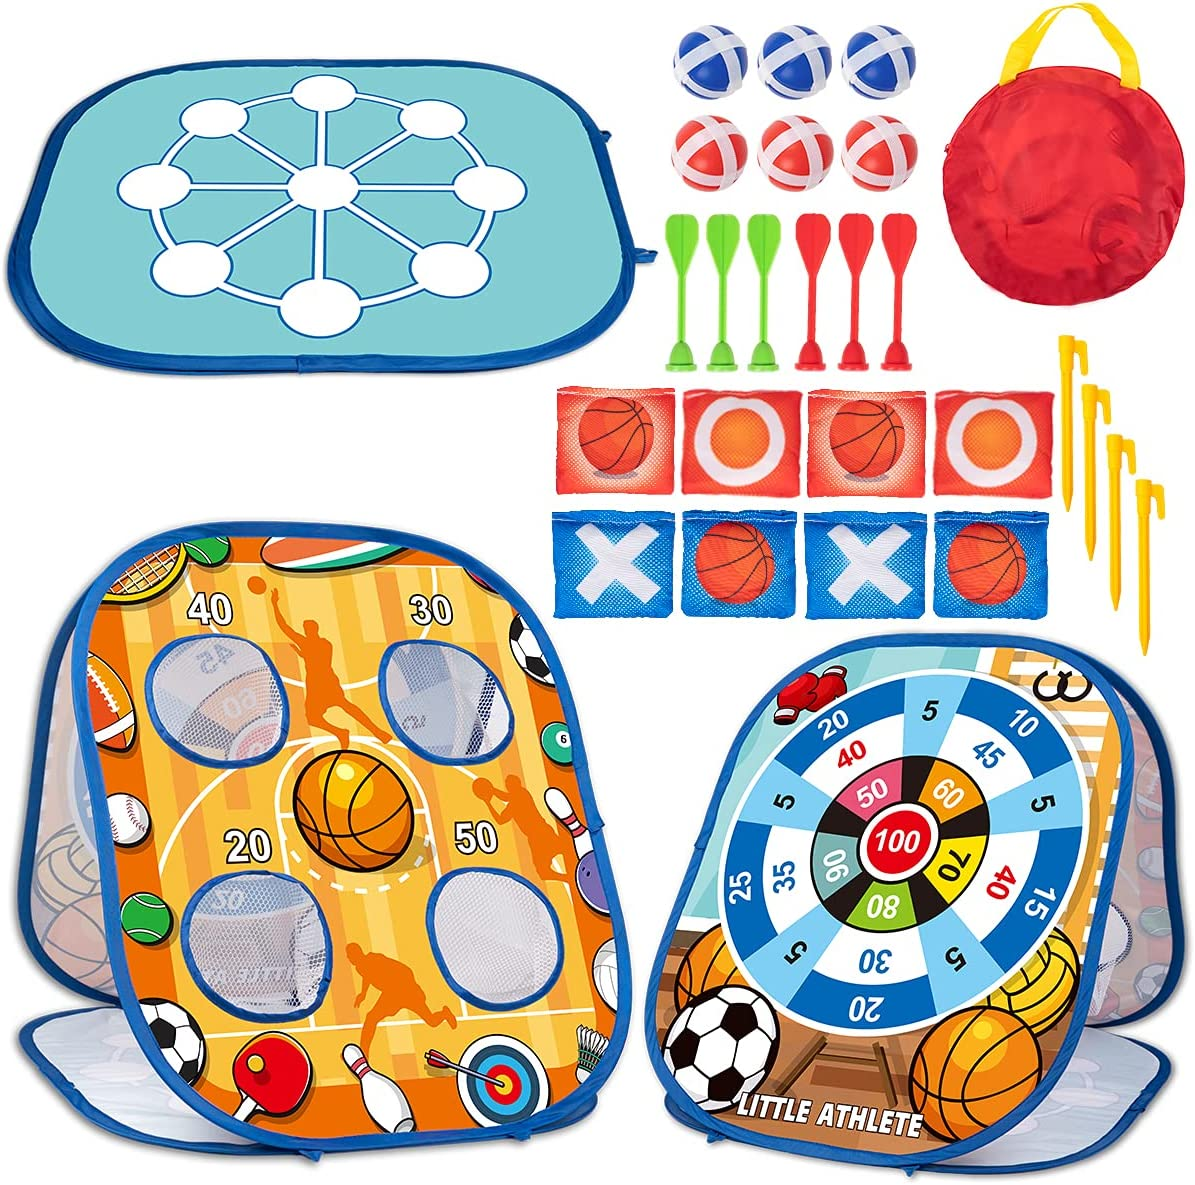 3 Sale special price in 2021 model 1 Bean Bag Toss Game Toys Kids for Set Outside To